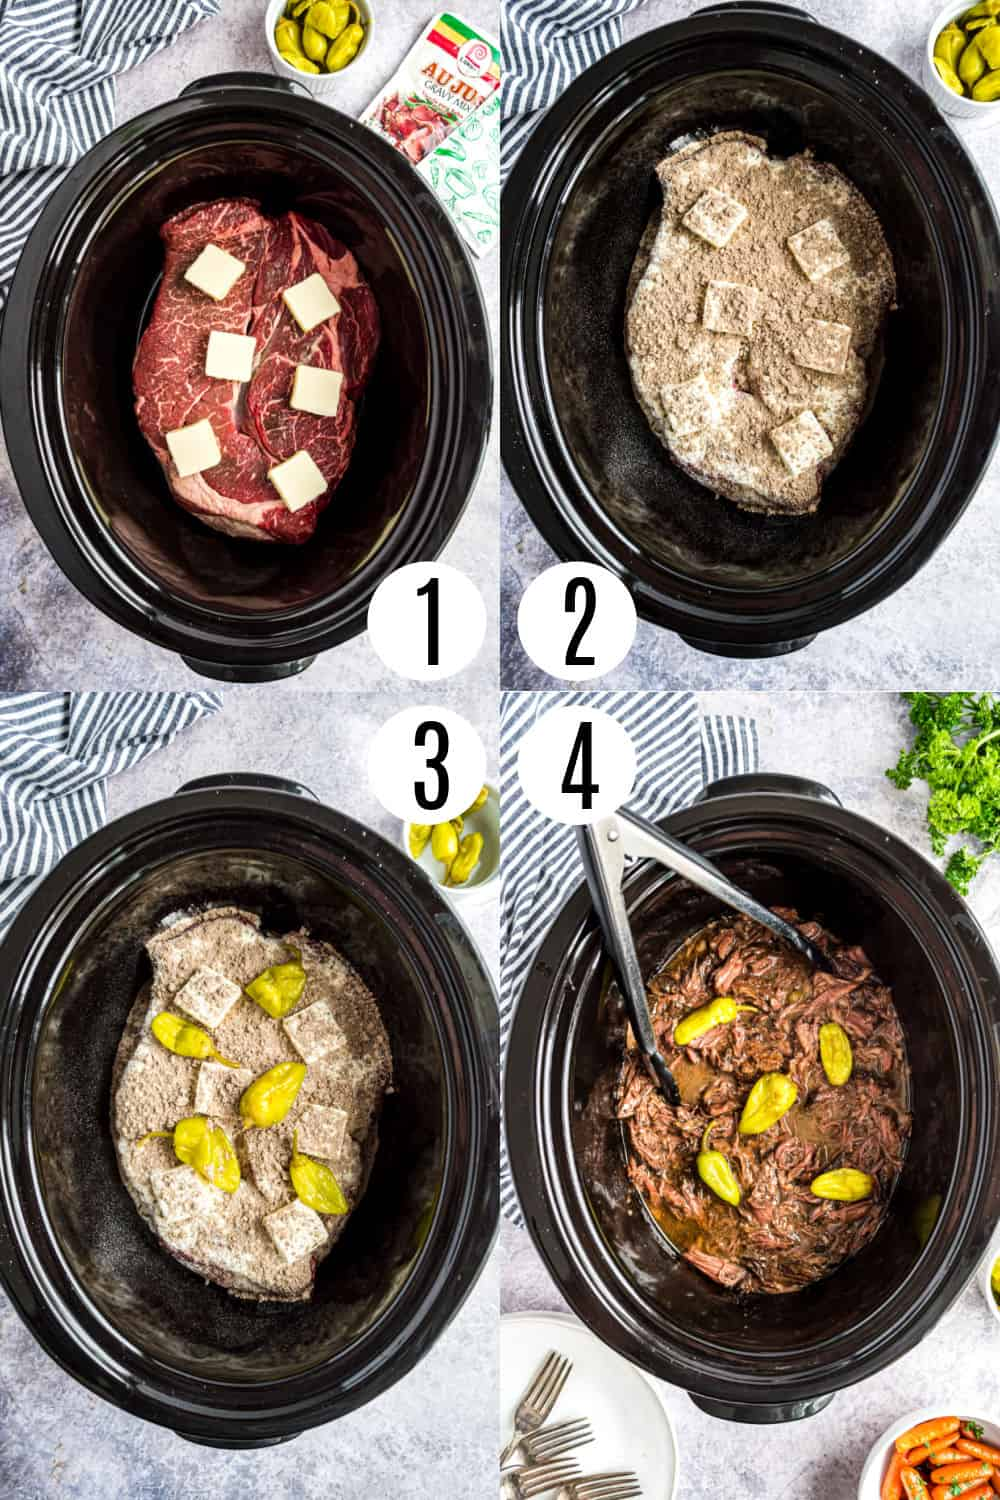 Step by step photos showing how to made slow cooker mississippi pot roast.